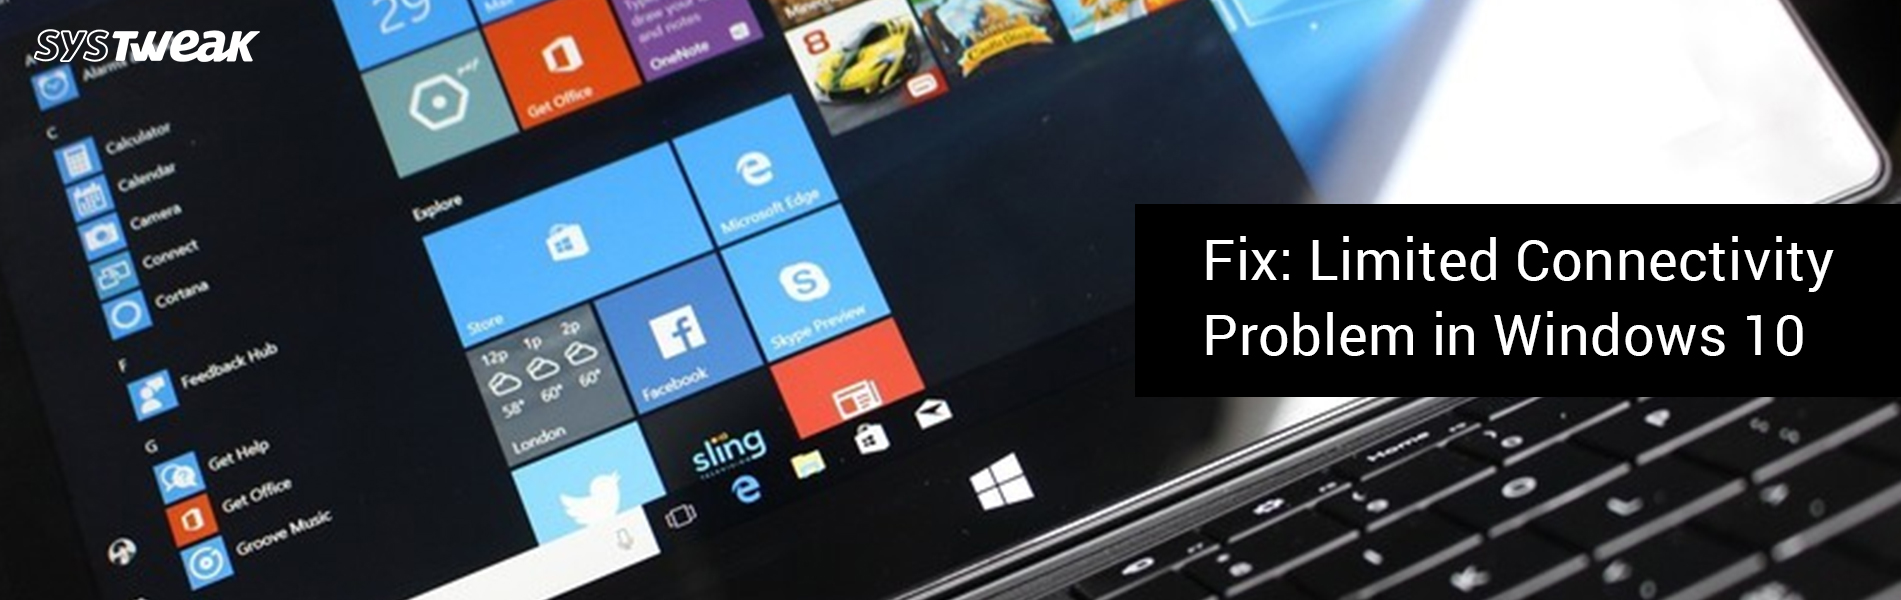 6 Ways To Fix Limited Connectivity Issue On Windows 10